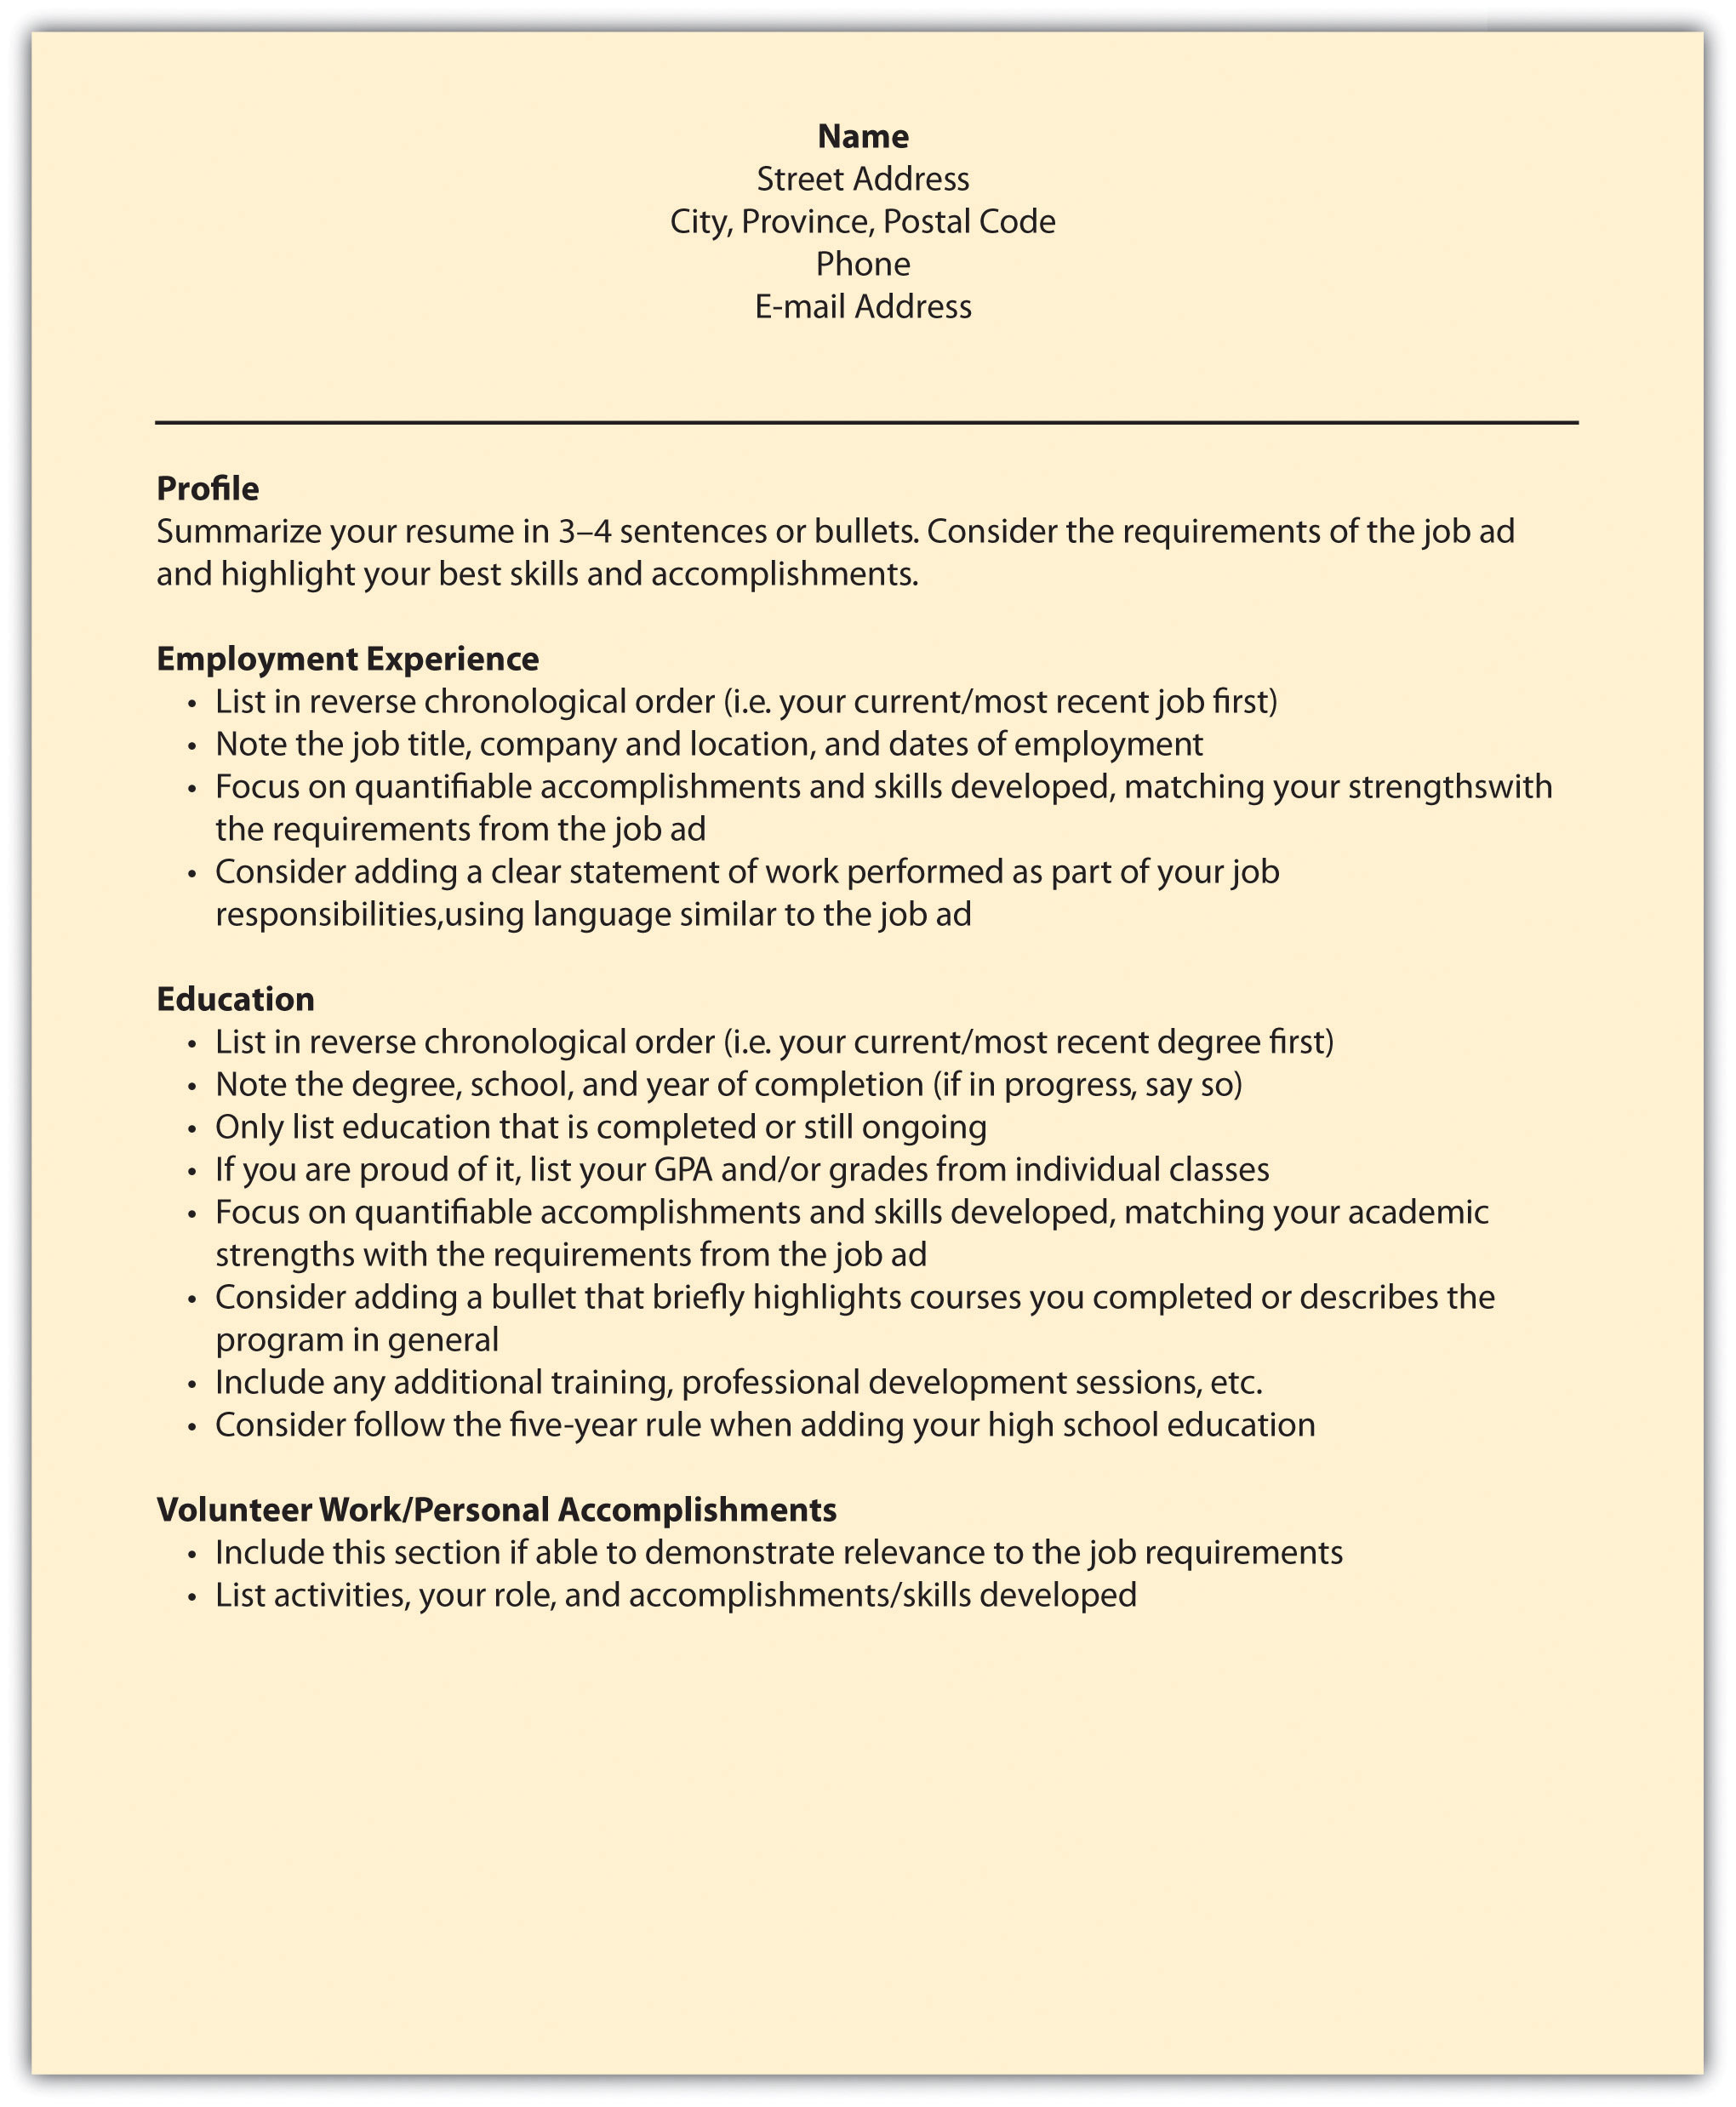 Functional Resume Canada Sample Create A Resume Upload Resume Writing Services Adm 2166 Be Calm Too Canadian Edition 102 Flatworld